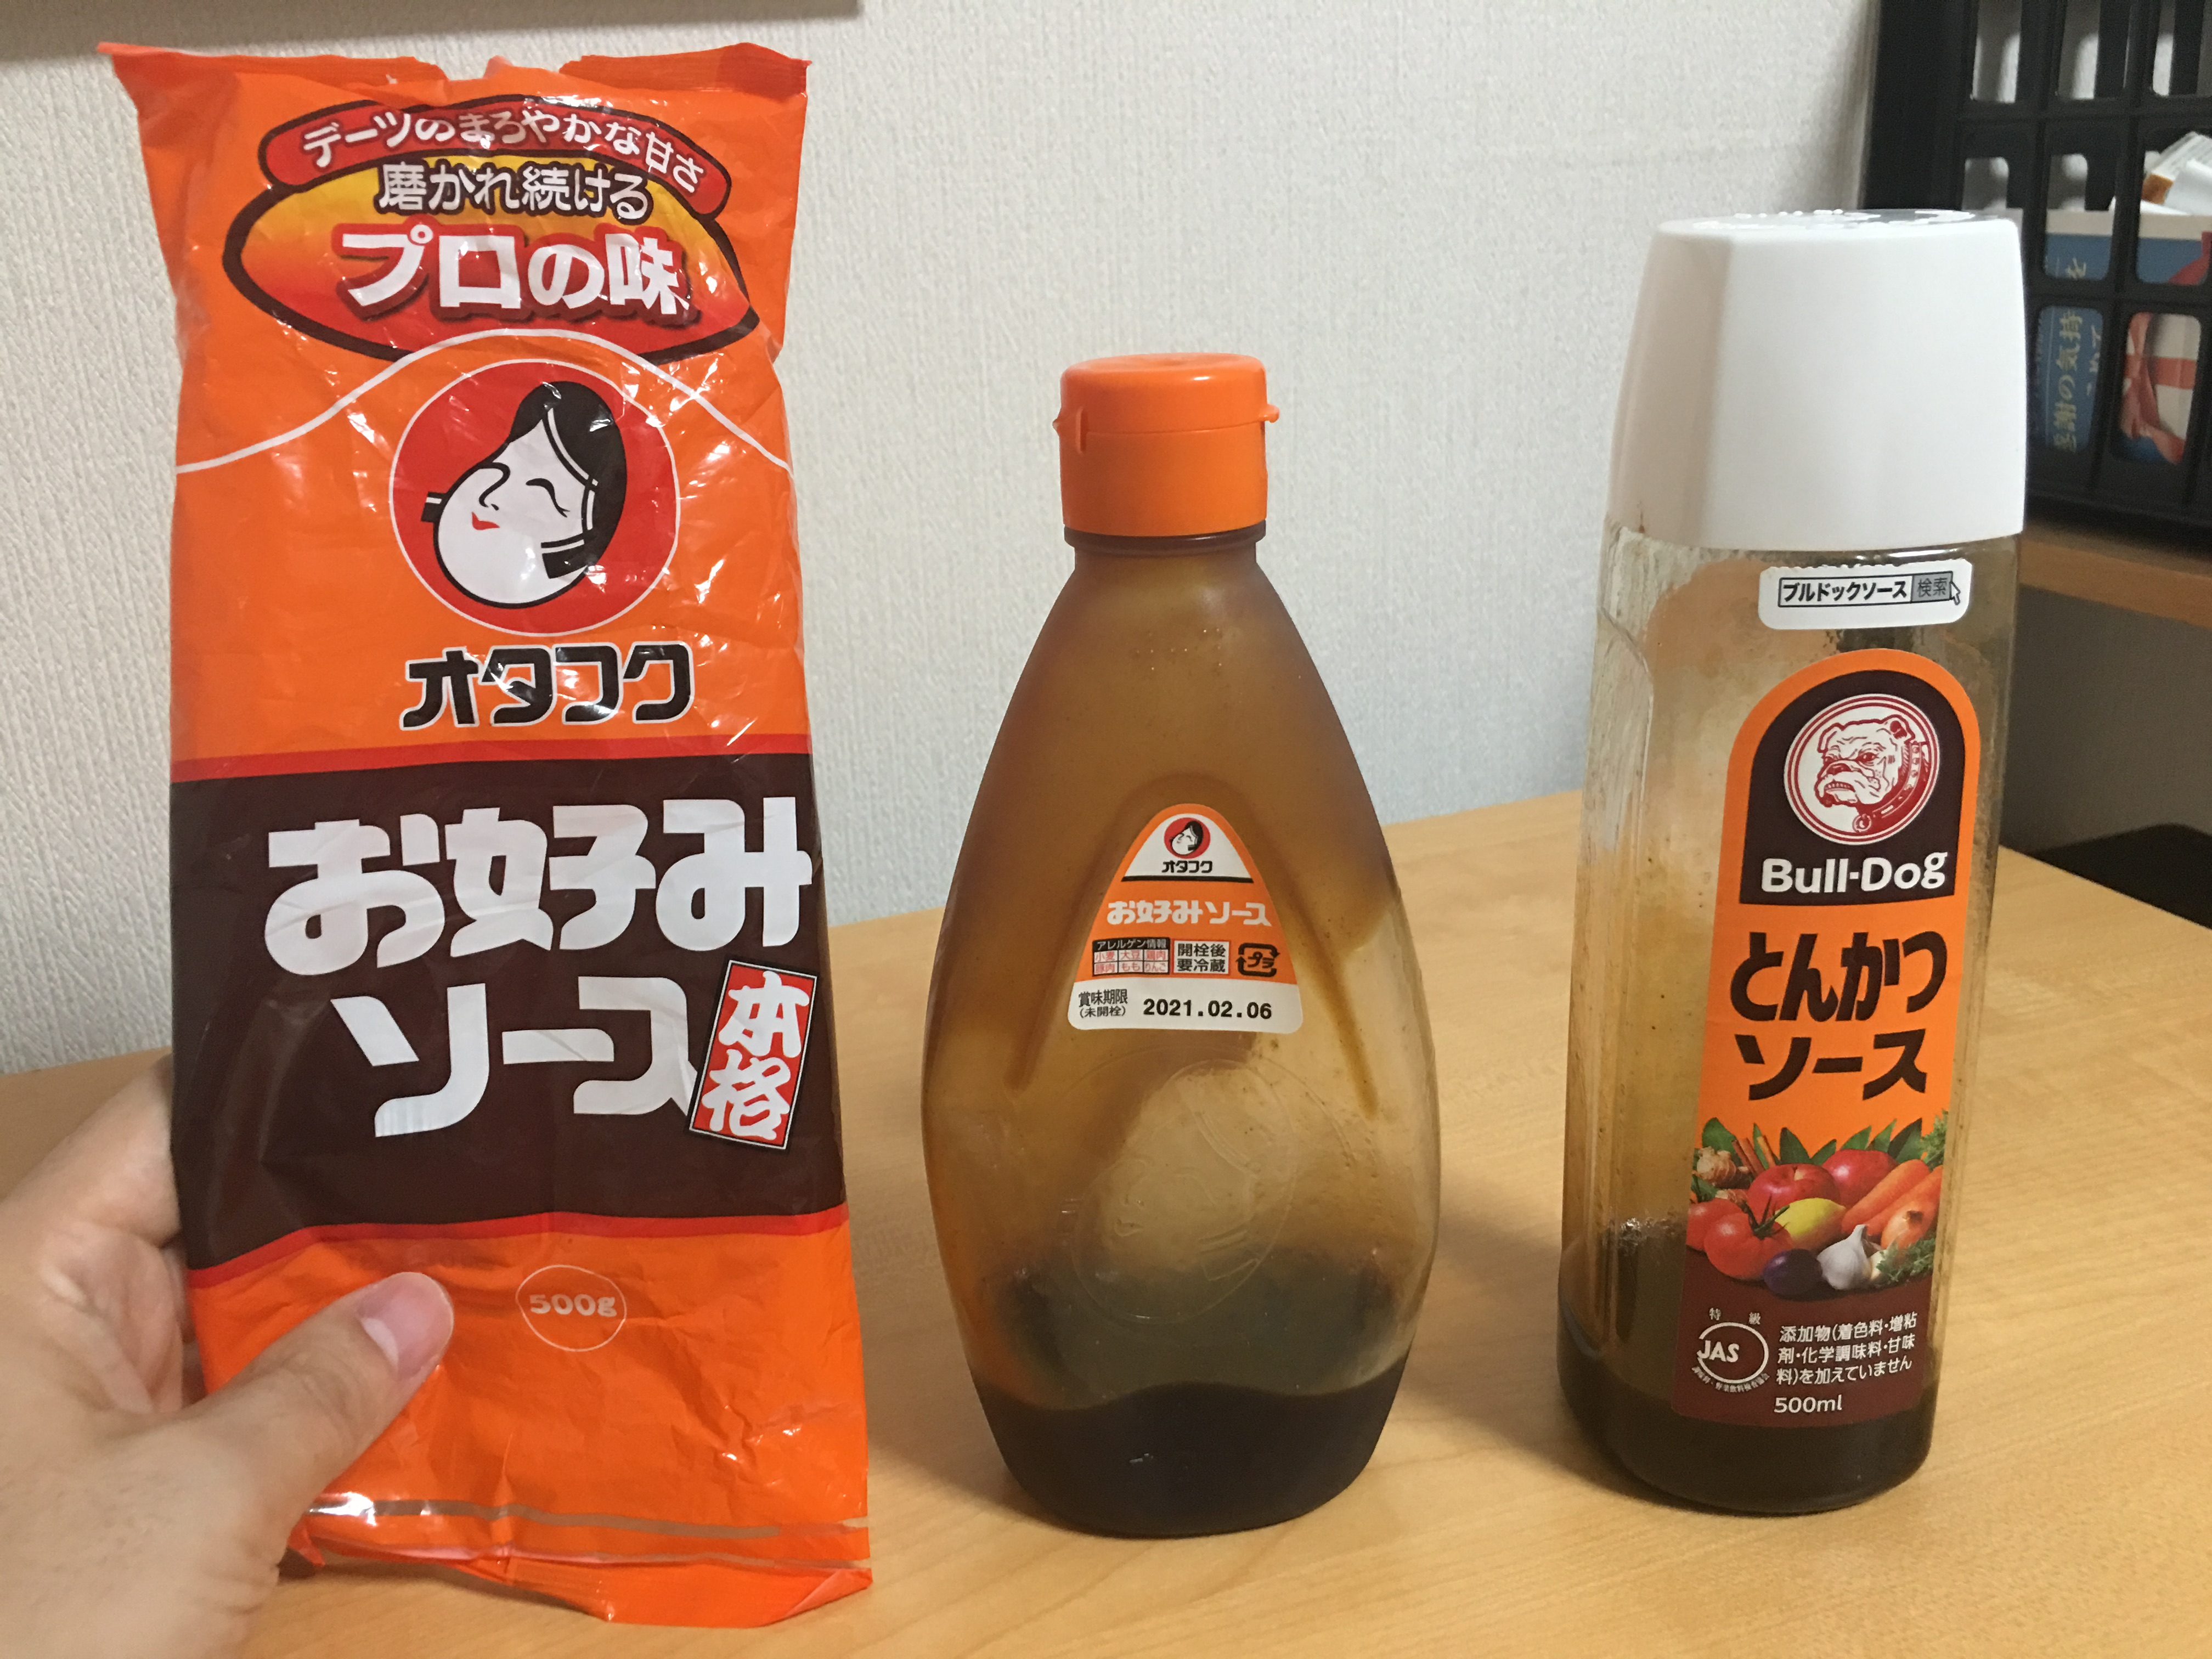 The Difference Okonomiyaki Sauce Vs Tonkatsu Sauce Recommendation Of Unique Japanese Products And Culture